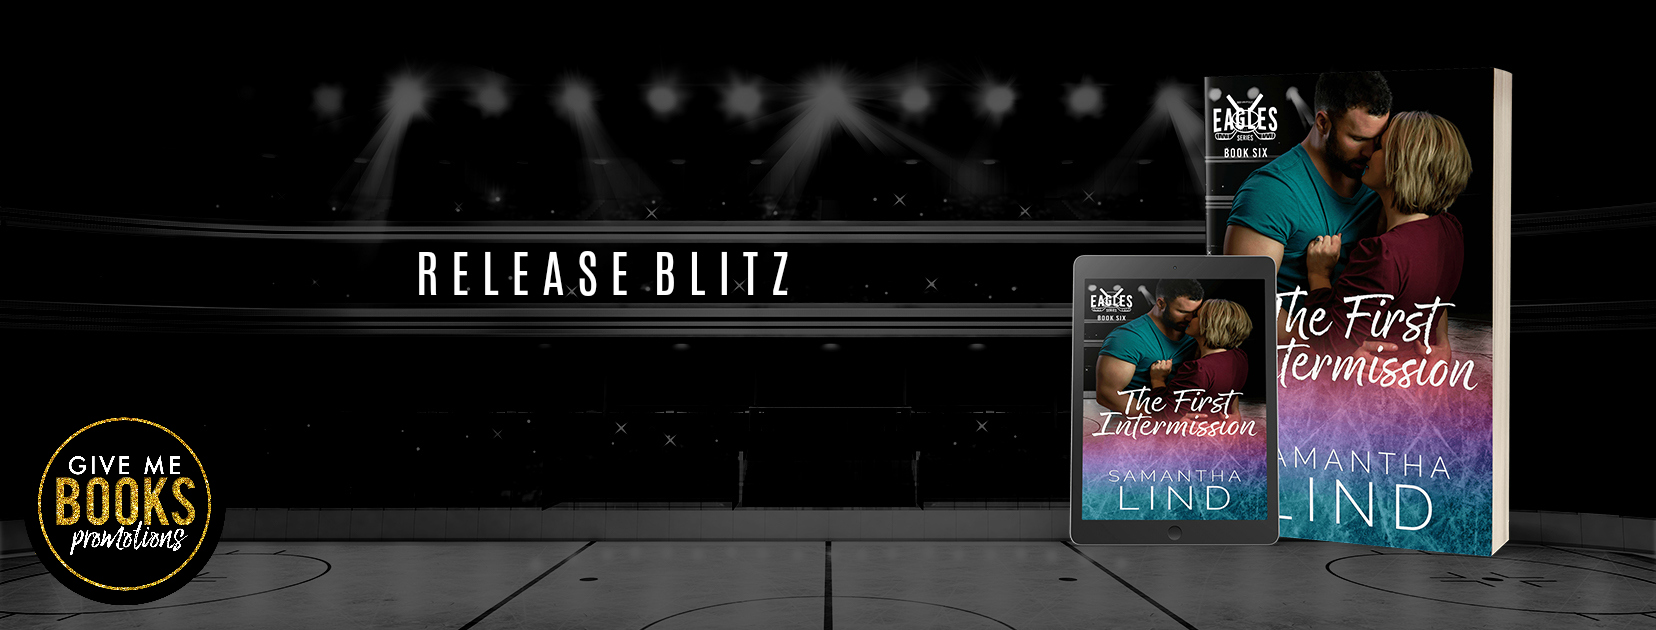 Release Blitz: The First Intermission by Samantha Lind